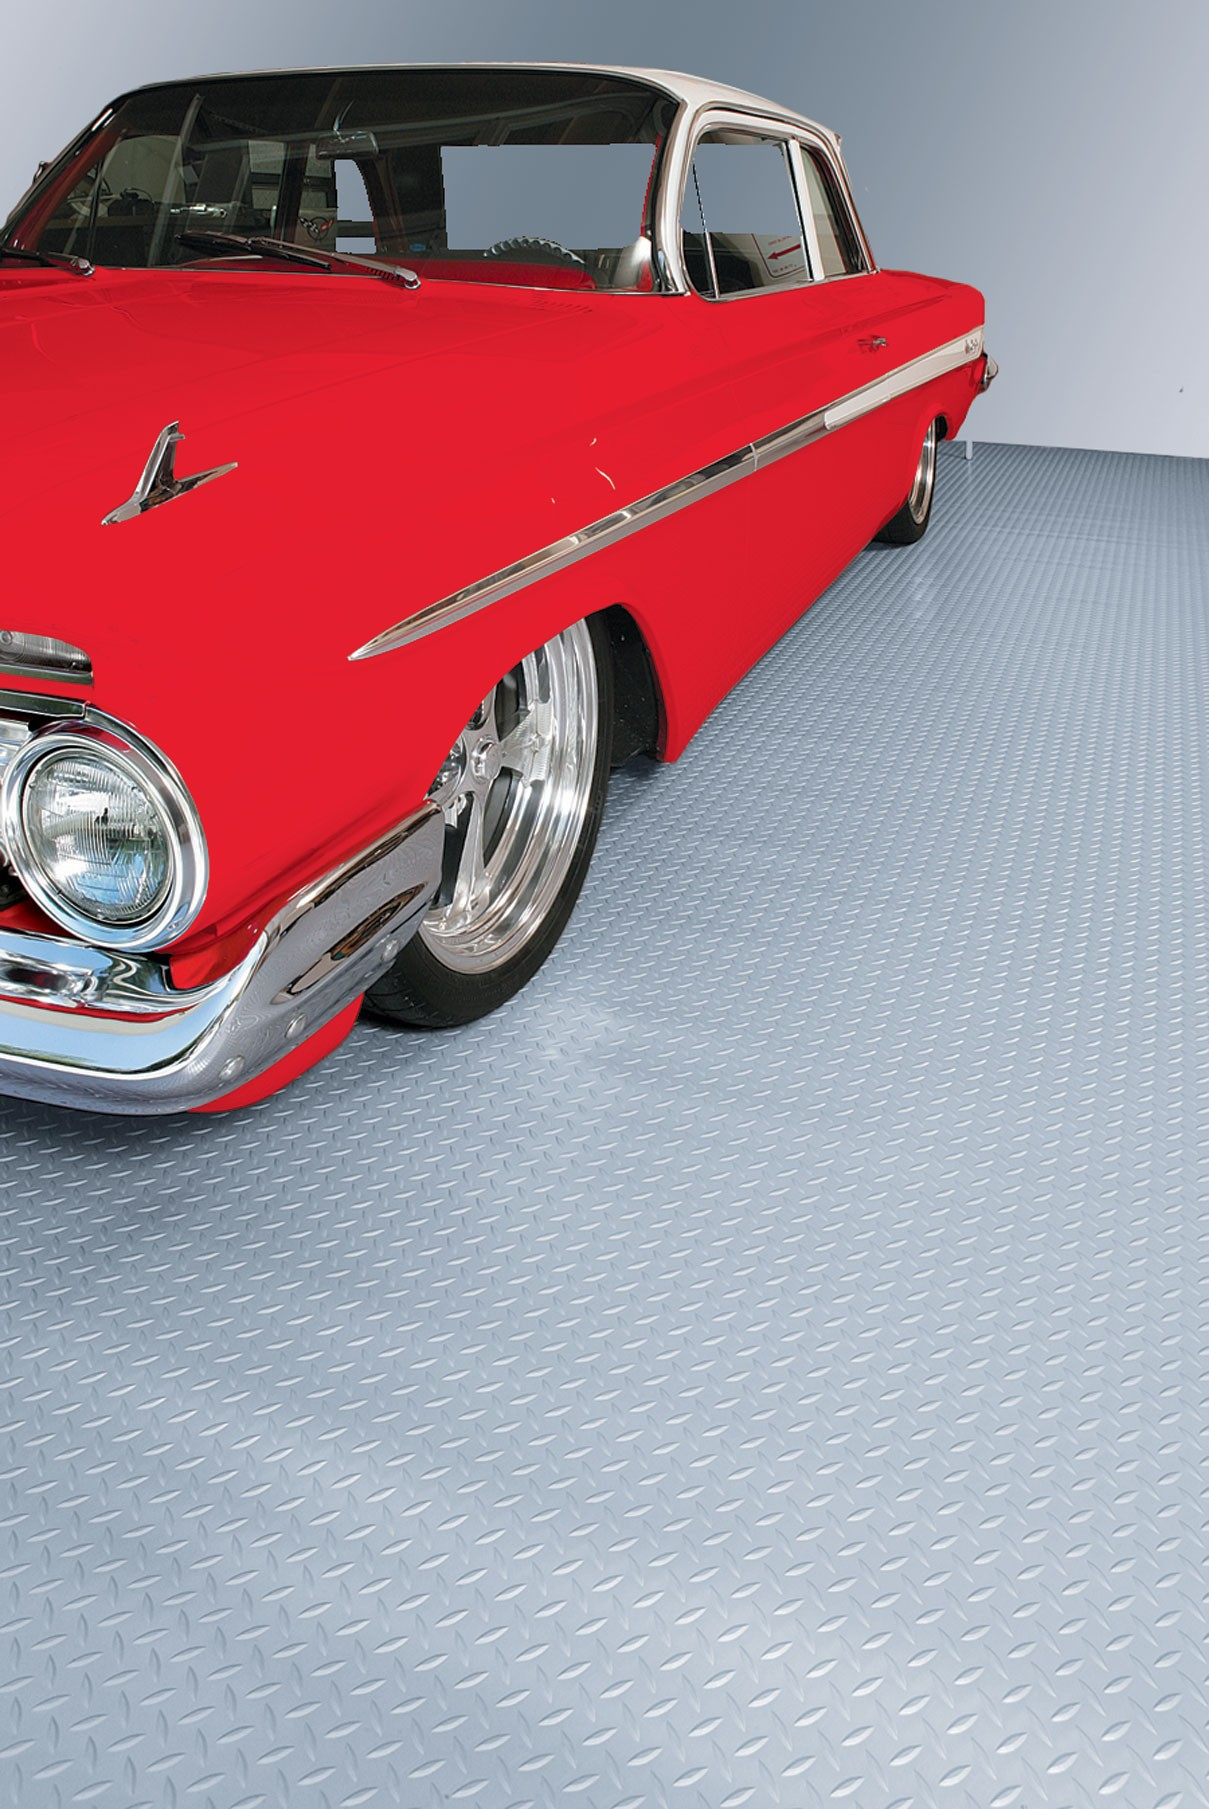 G-Floor Commercial Grade Floor Cover/Protector Diamond Pattern Flooring